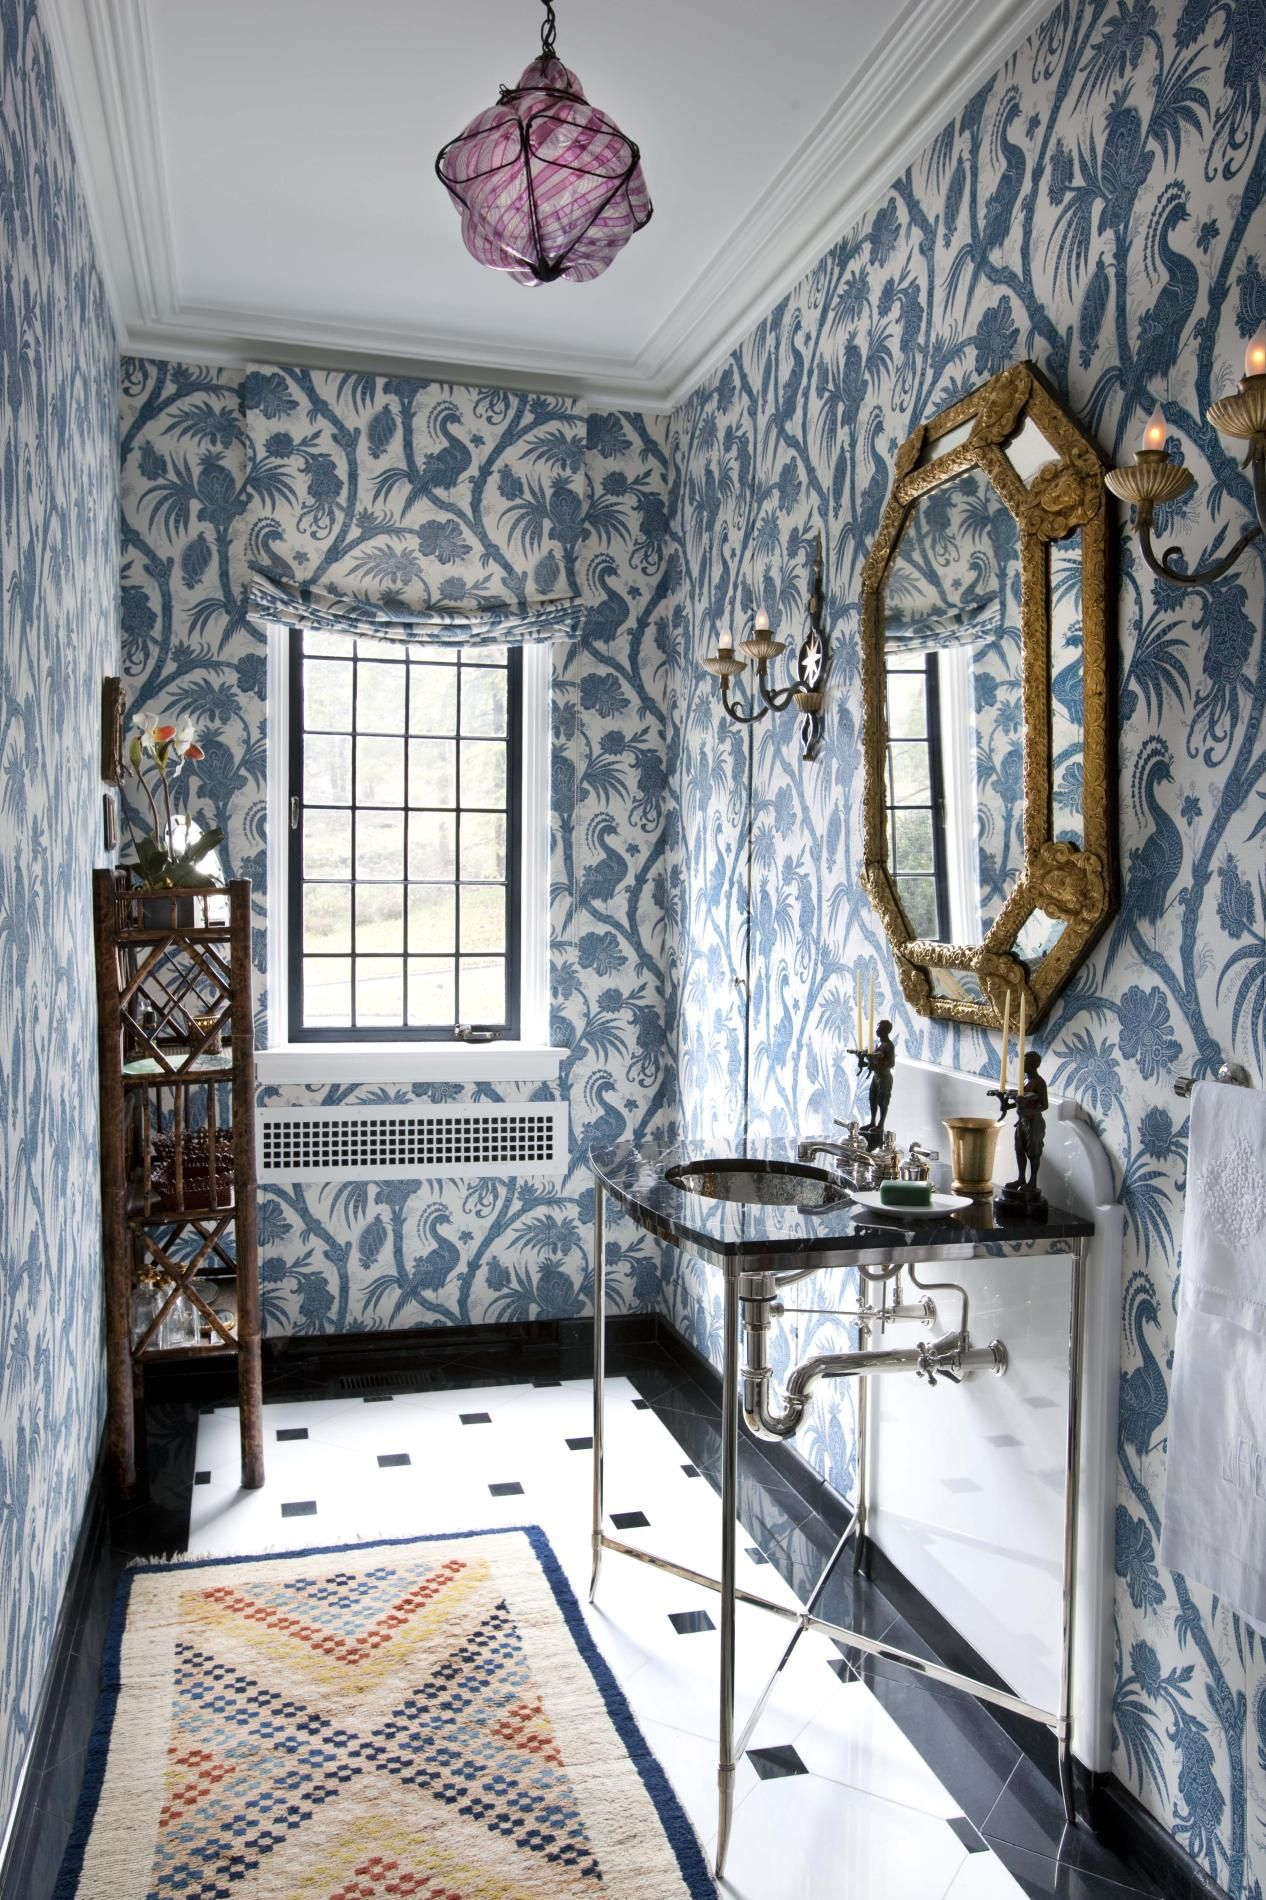 Robert couturier interesting way of doing the backsplash - Robert couturier interior design ...